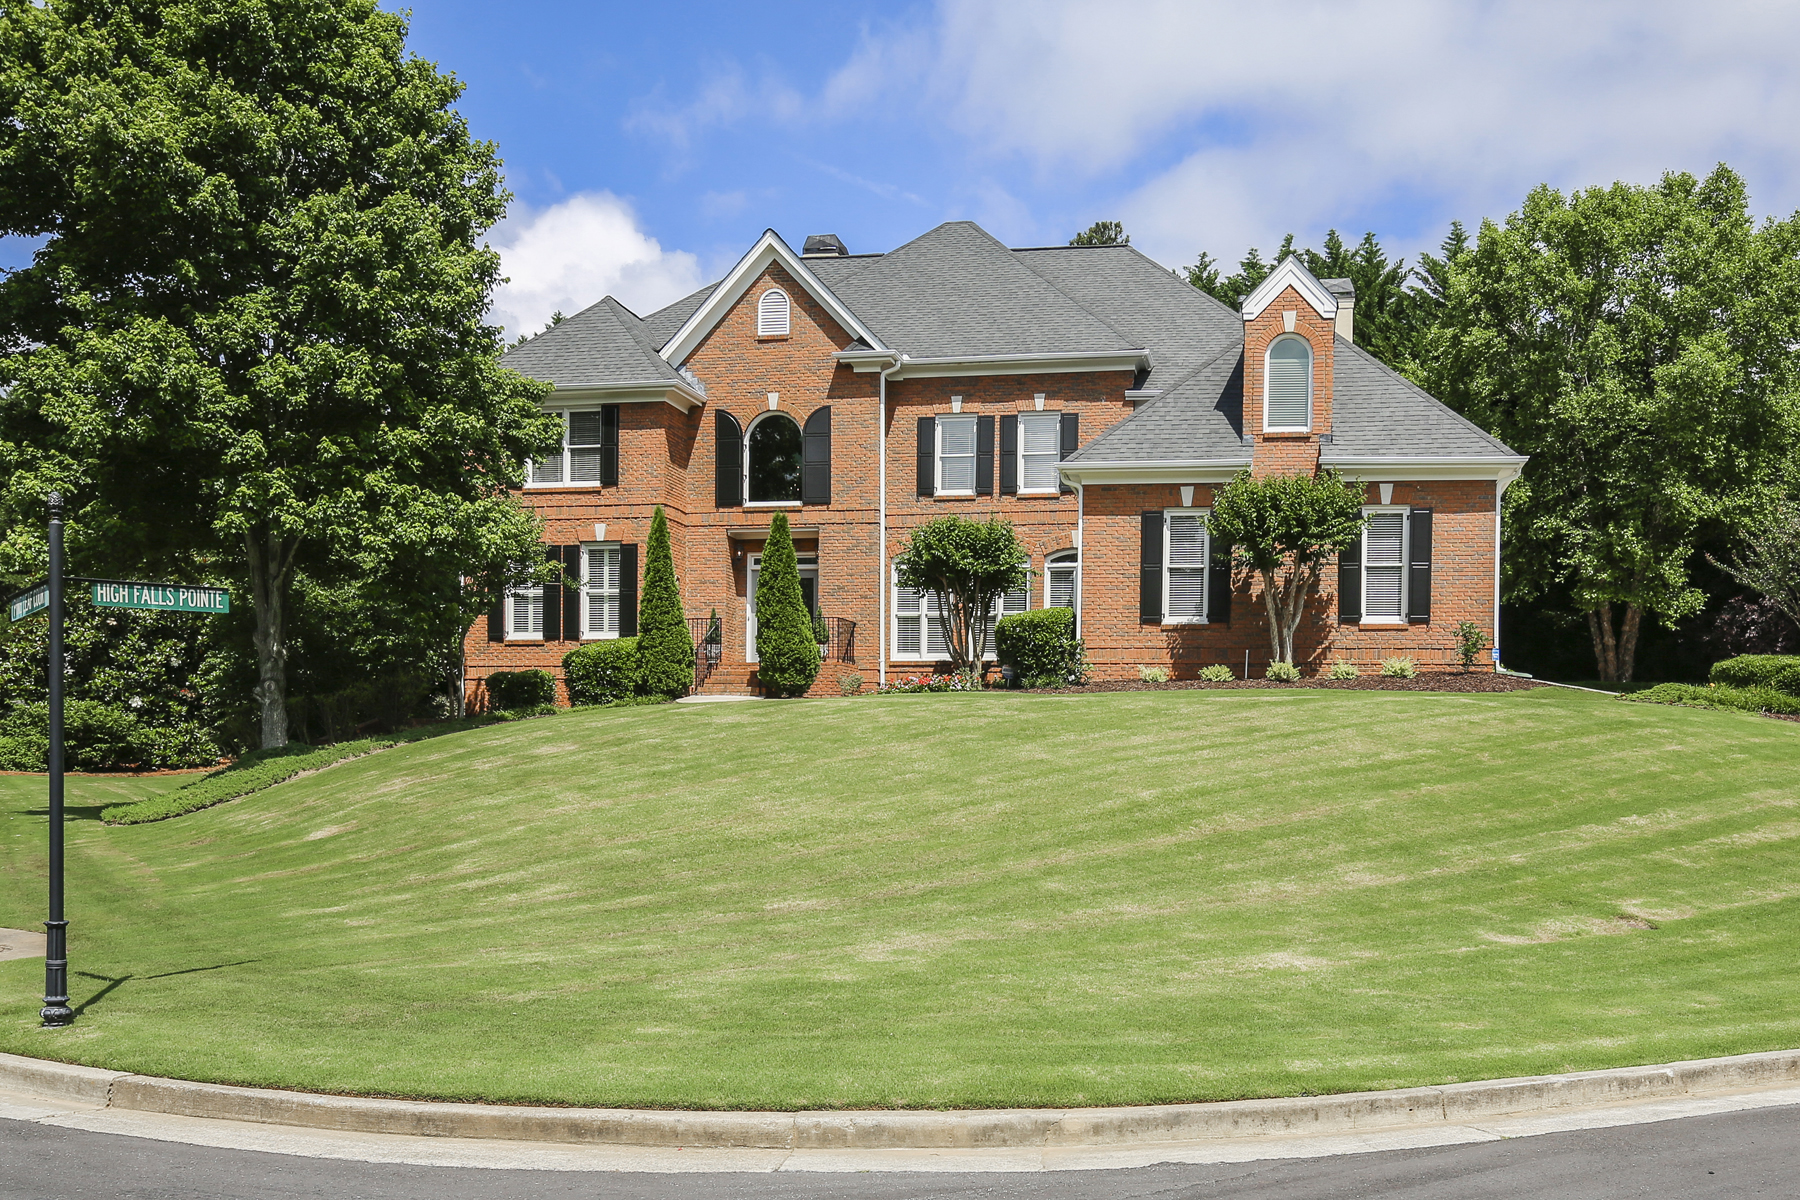 Single Family Home for Sale at Stunning Meticulously Maintainted Custom Brick Beauty 10190 High Falls Pointe Johns Creek, Georgia 30022 United States